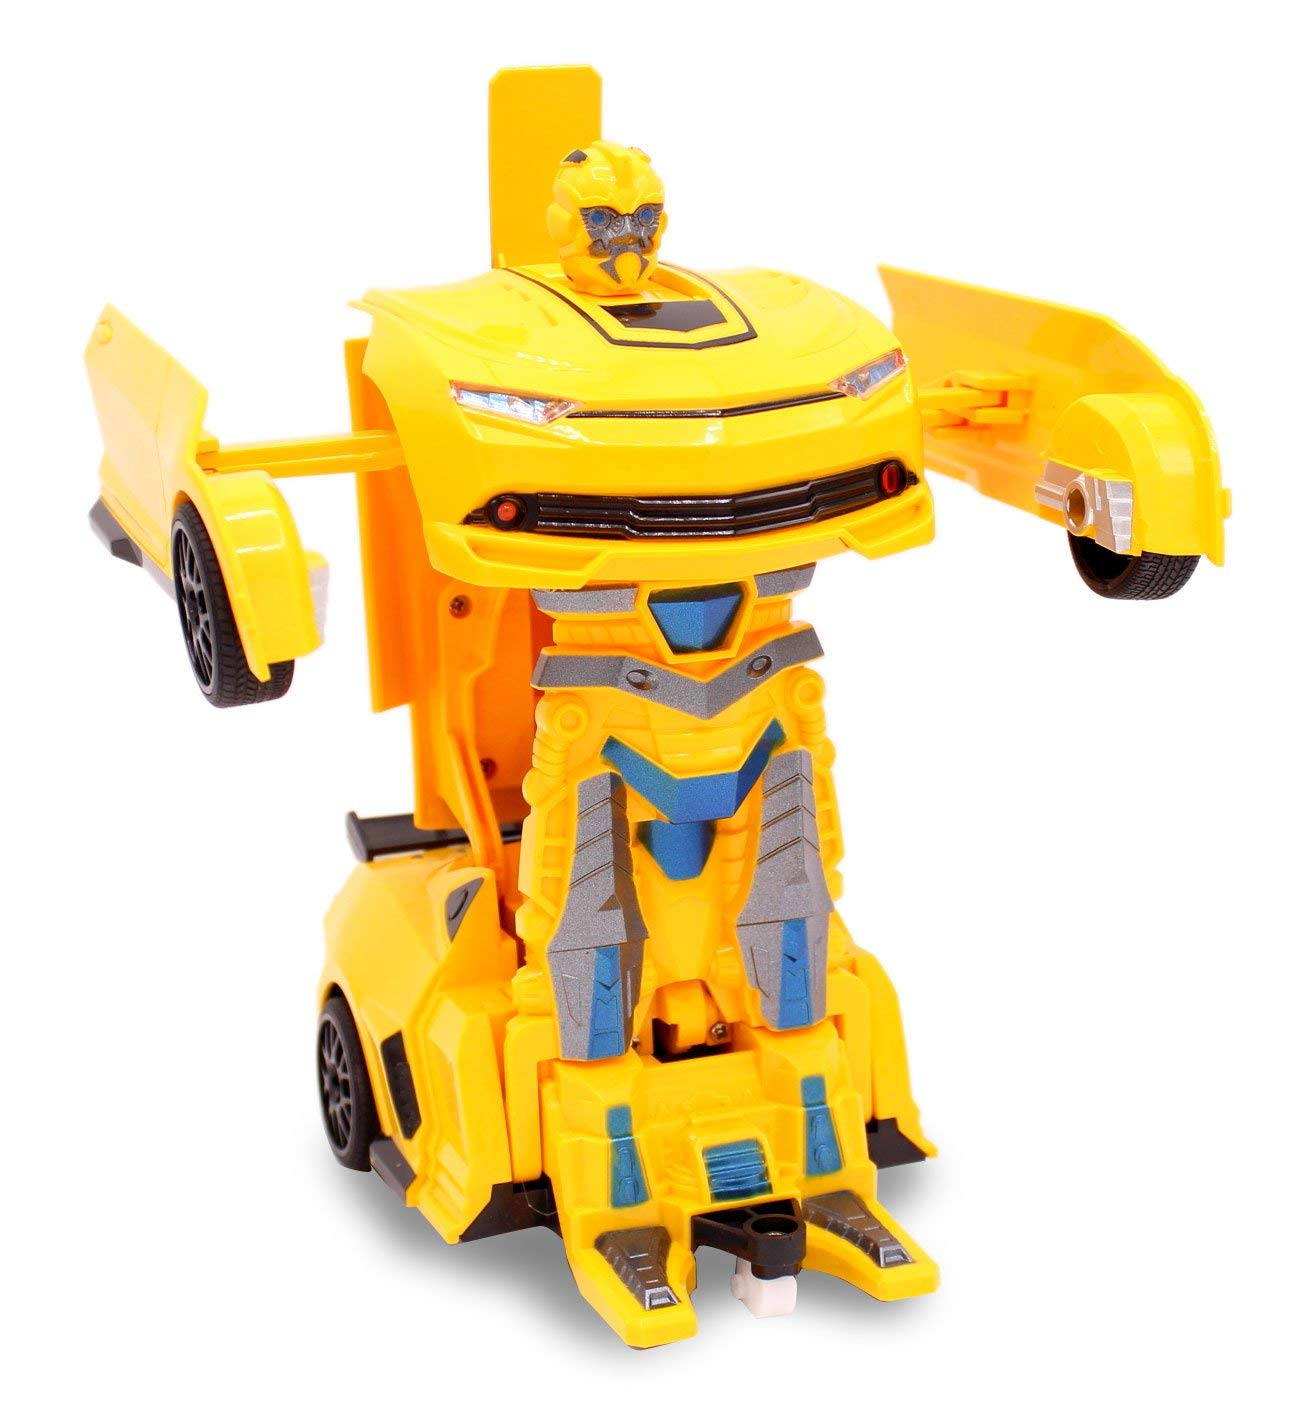 Kids RC Toy Transforming Robot Remote Control (27 MHz) Sports Car One Button Transformation Realistic Engine Sounds 360 Speed Drifting 1:22 Scale Toys For Boys (Yellow) by Transformania Toys (Image #3)